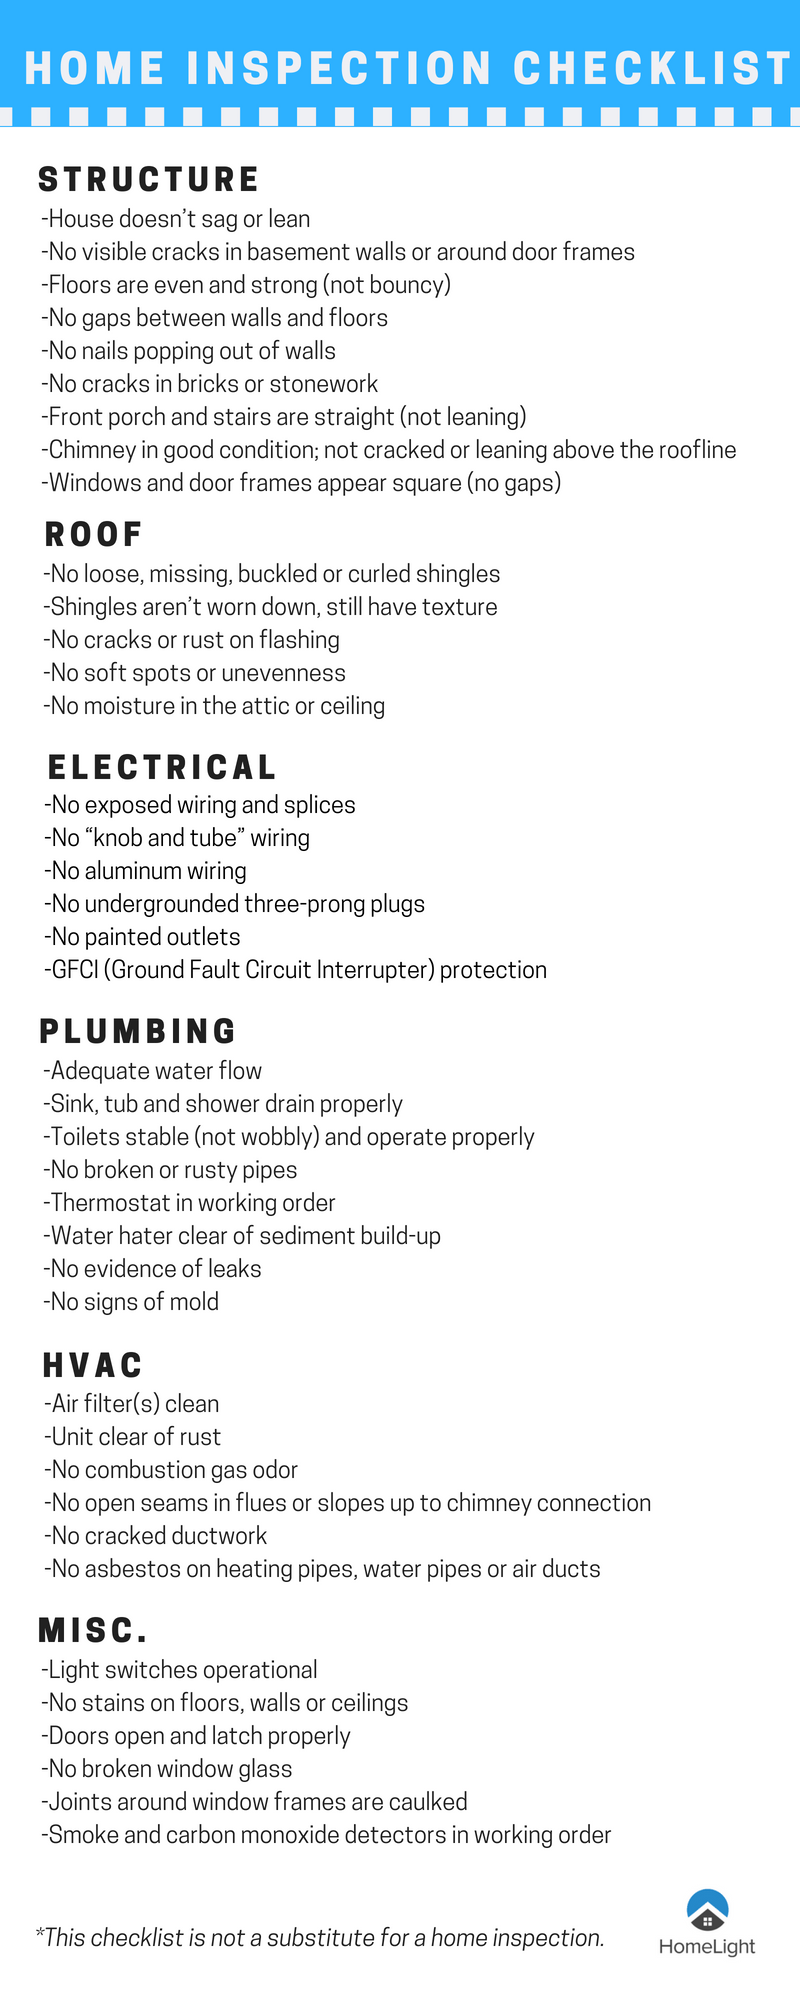 HomeLight Home Inspection Checklist